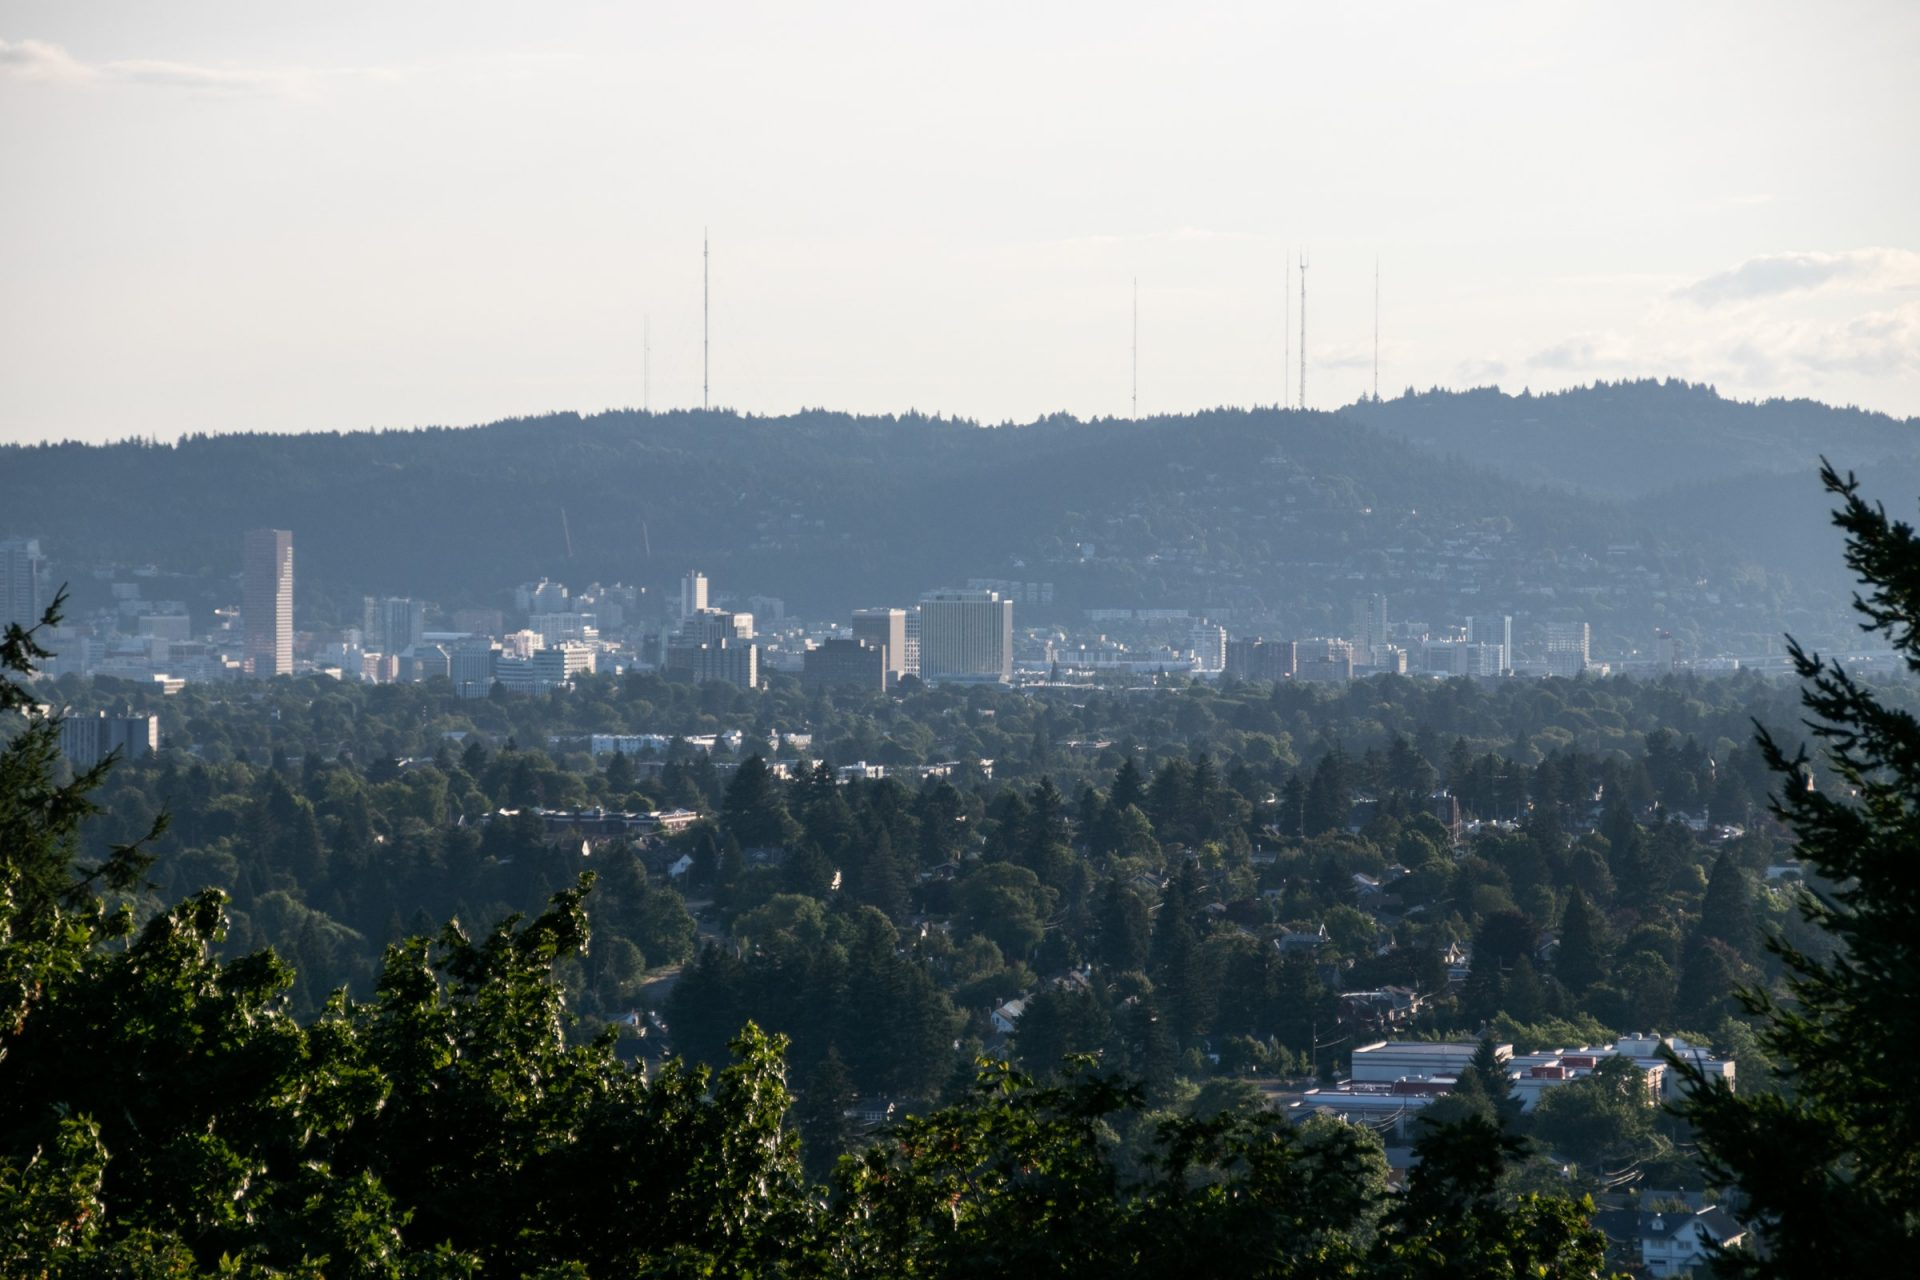 Distant Cityscape Amid Forested Areas